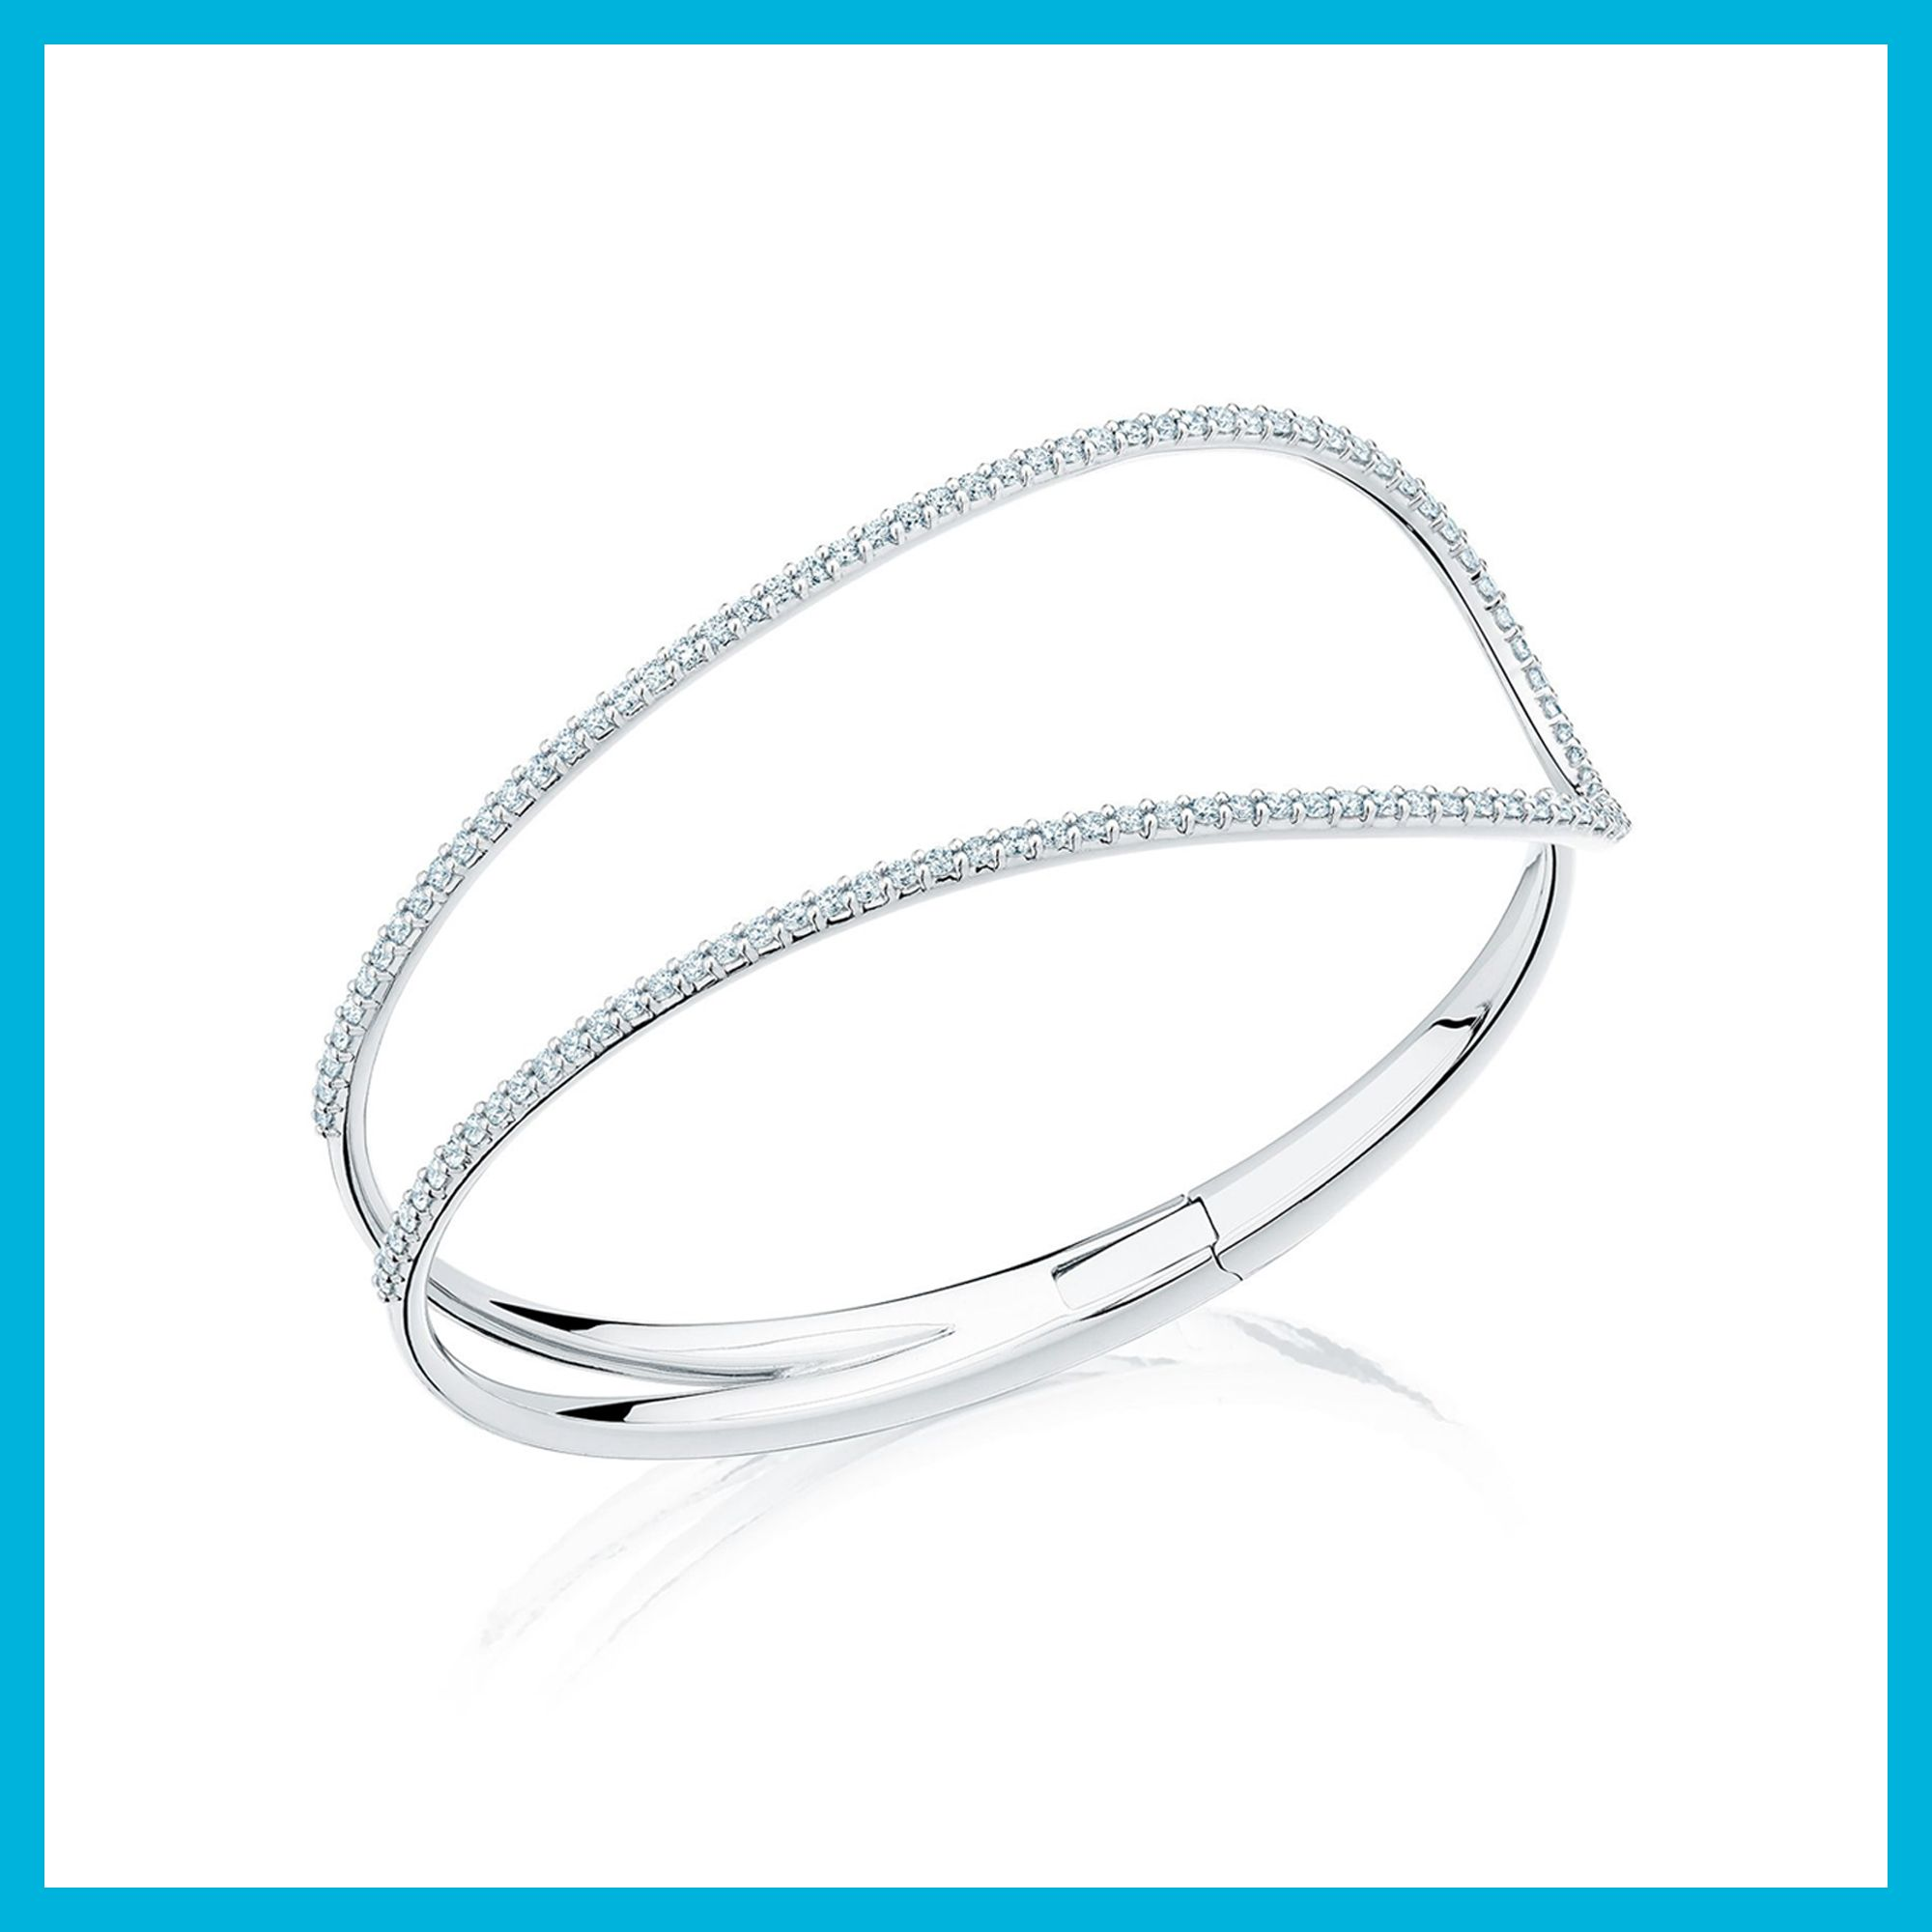 Pétale diamond cuff bracelet in white gold in holidays with